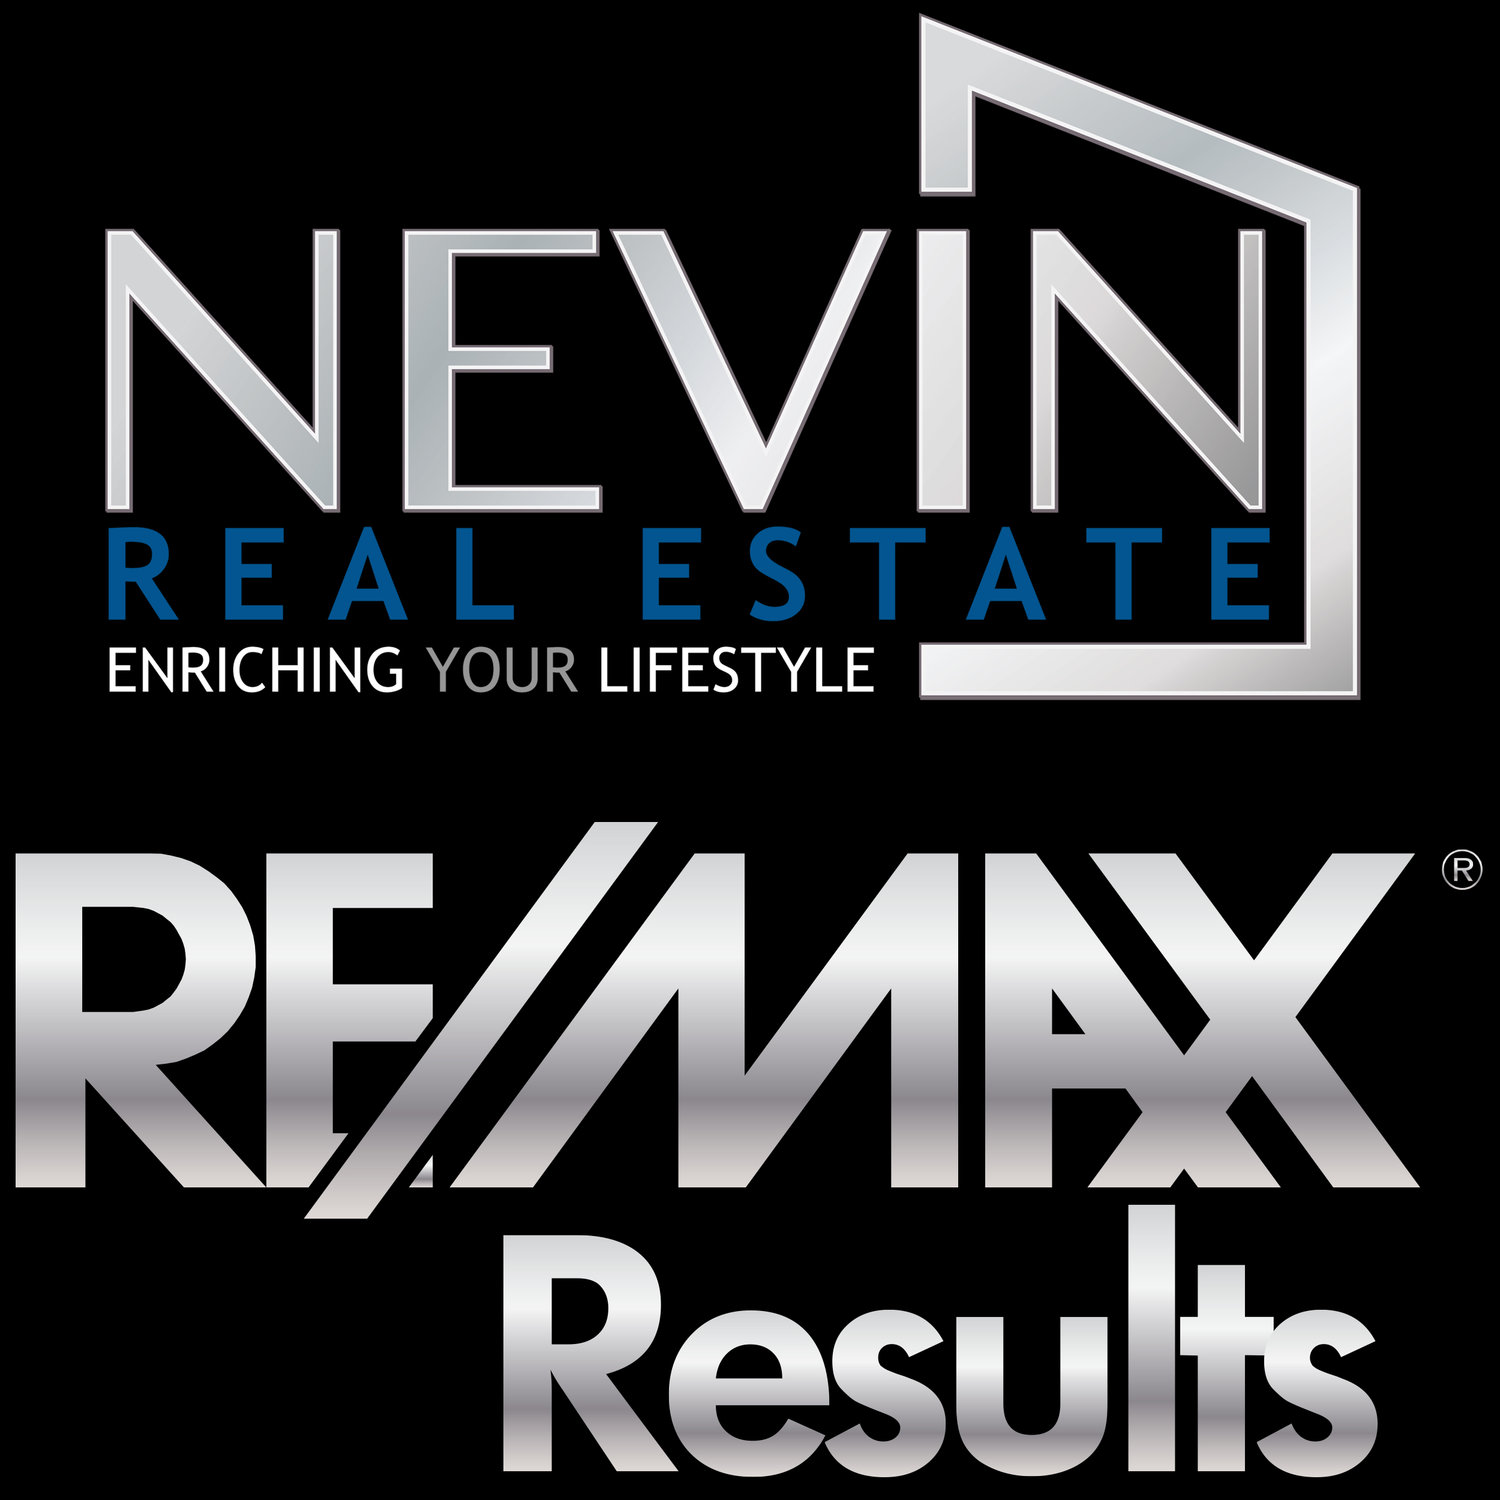 Nevin Real Estate